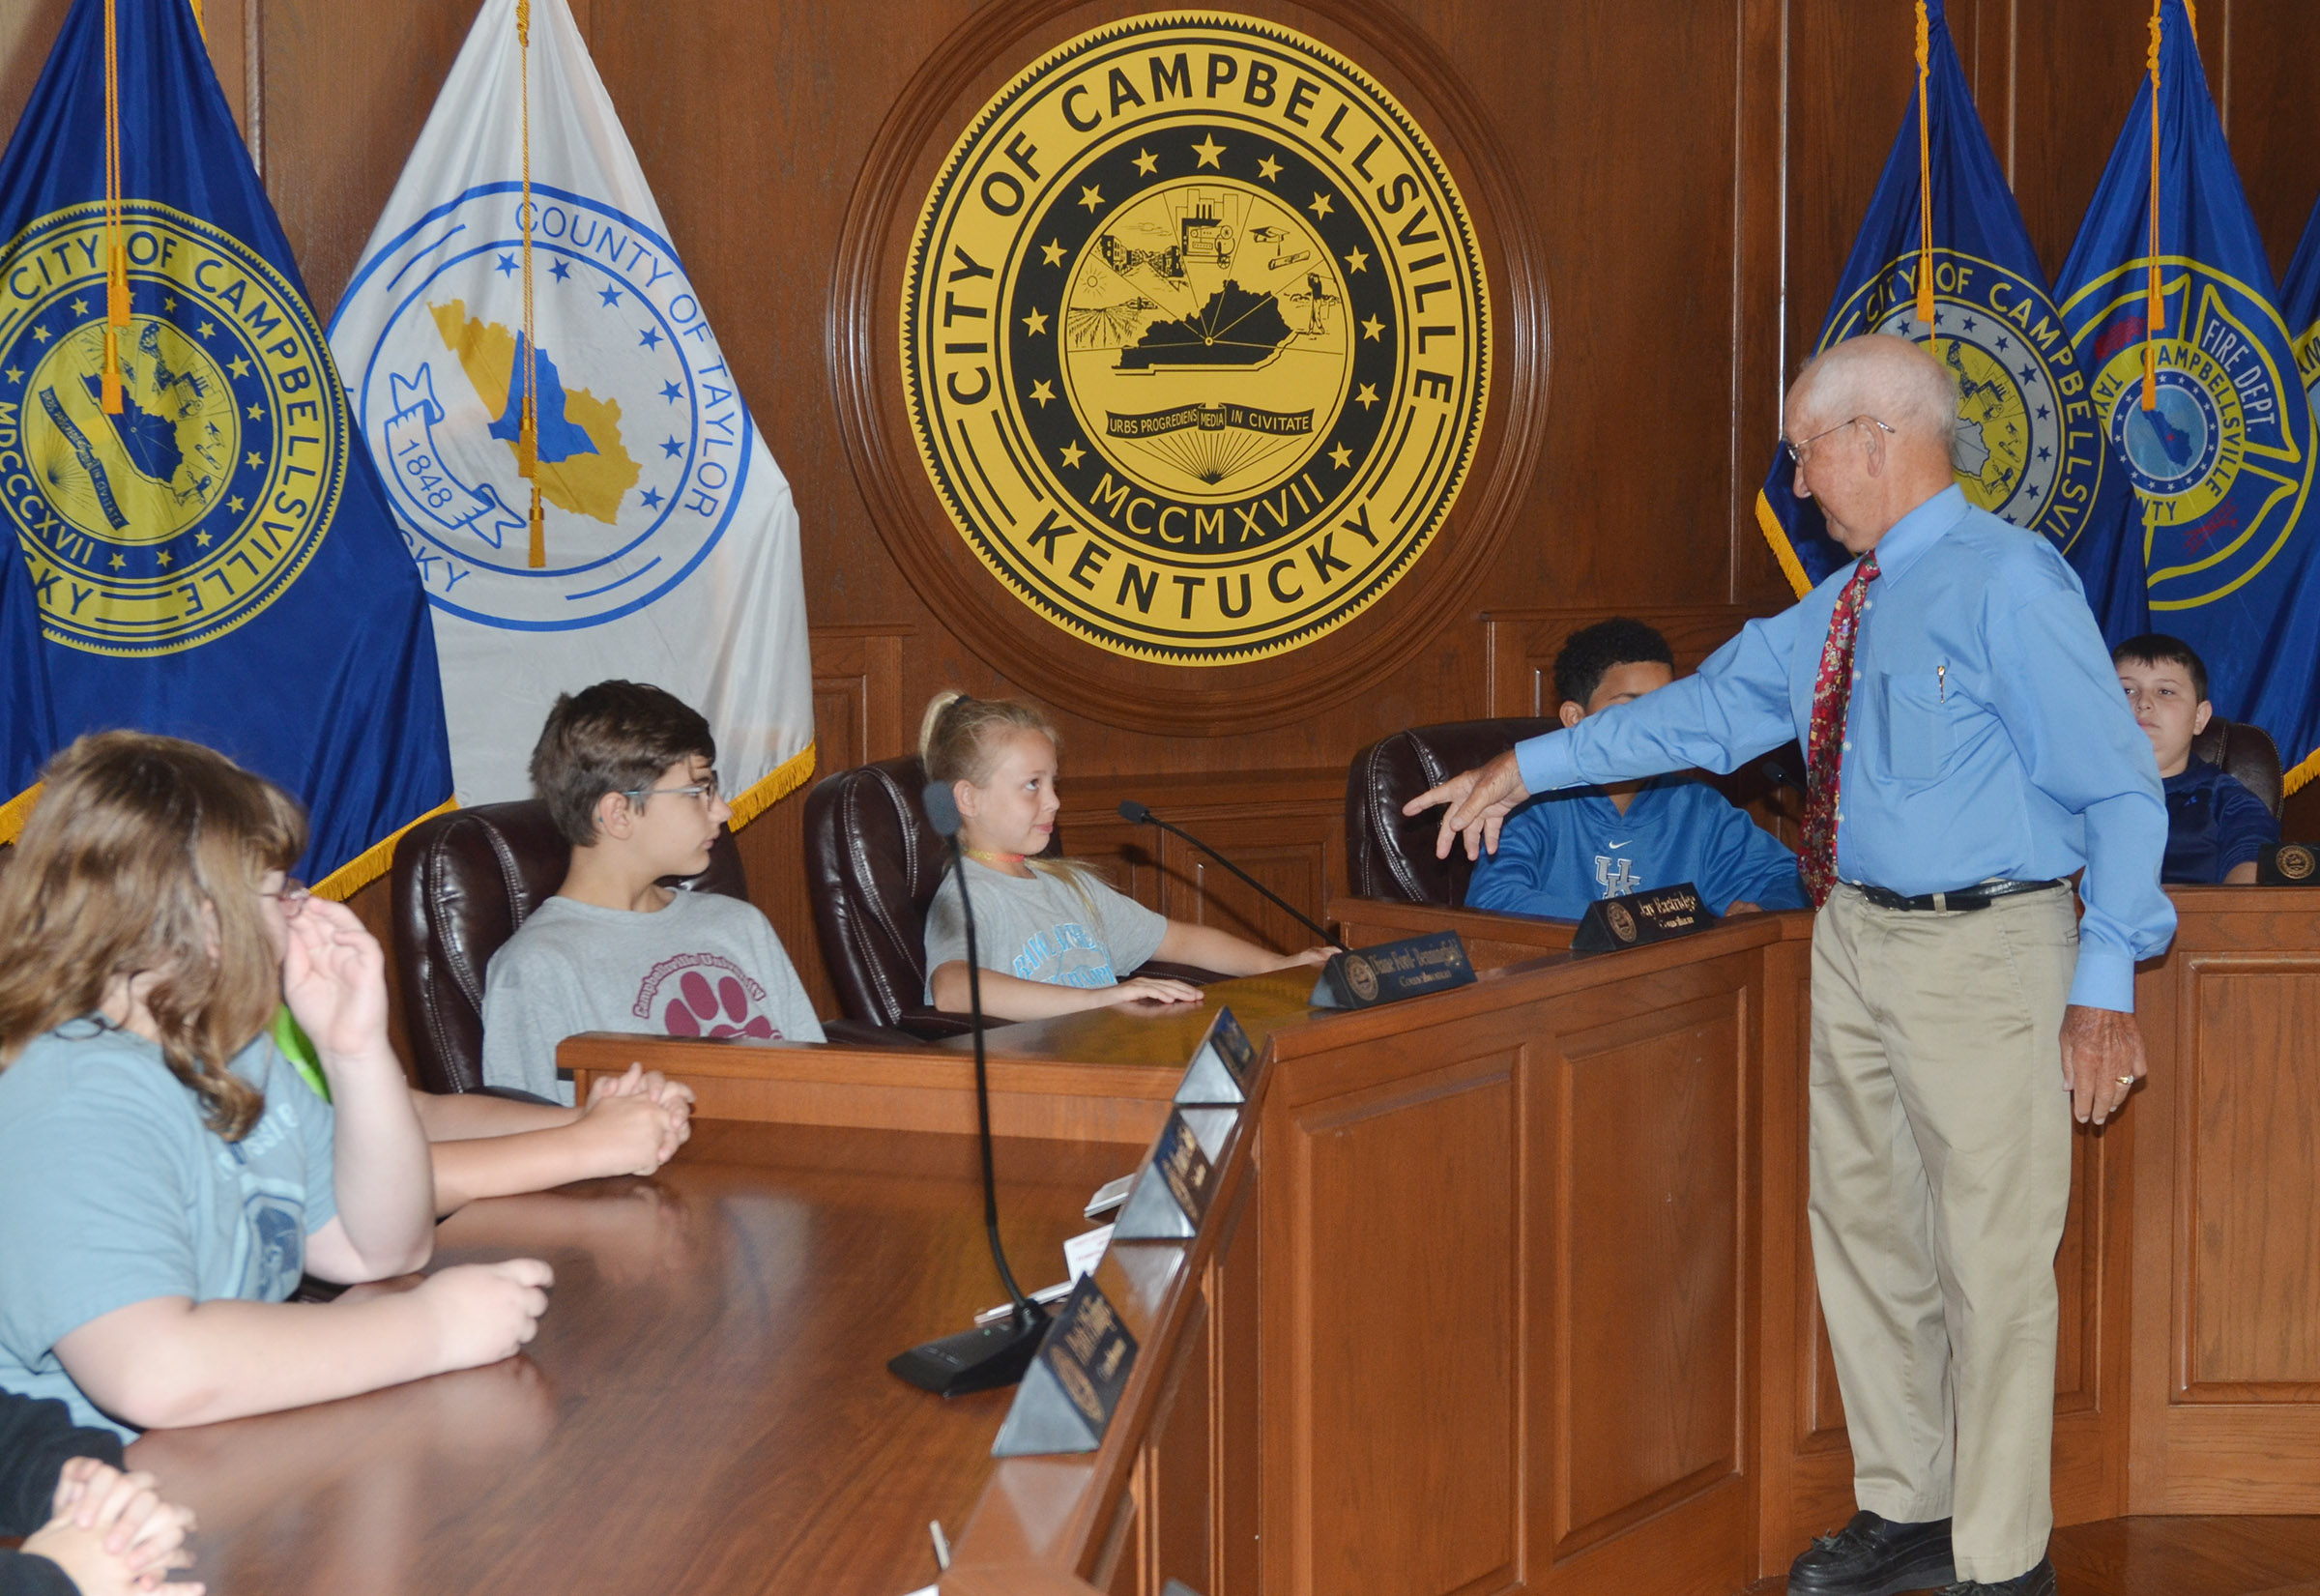 Former Campbellsville Mayor Paul Osborne explains to CMS fifth-graders about City Council meetings and the responsibilities of City Council members.